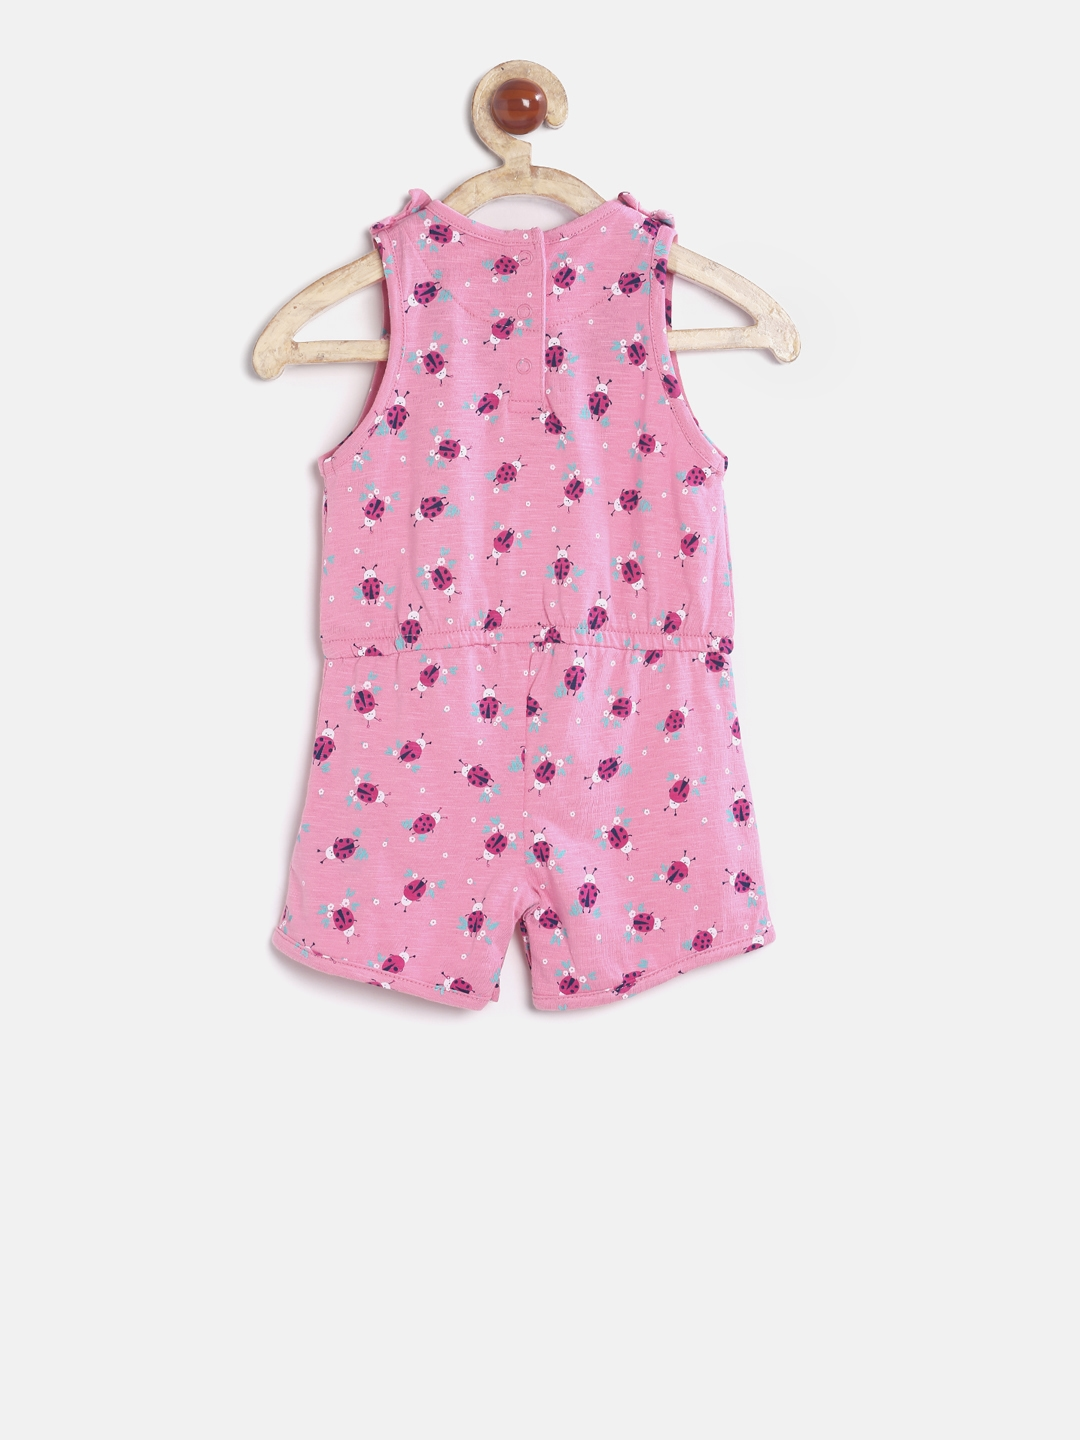 b452153b06a Buy Mothercare Pink Printed Playsuit - Jumpsuit for Girls 2189710 ...